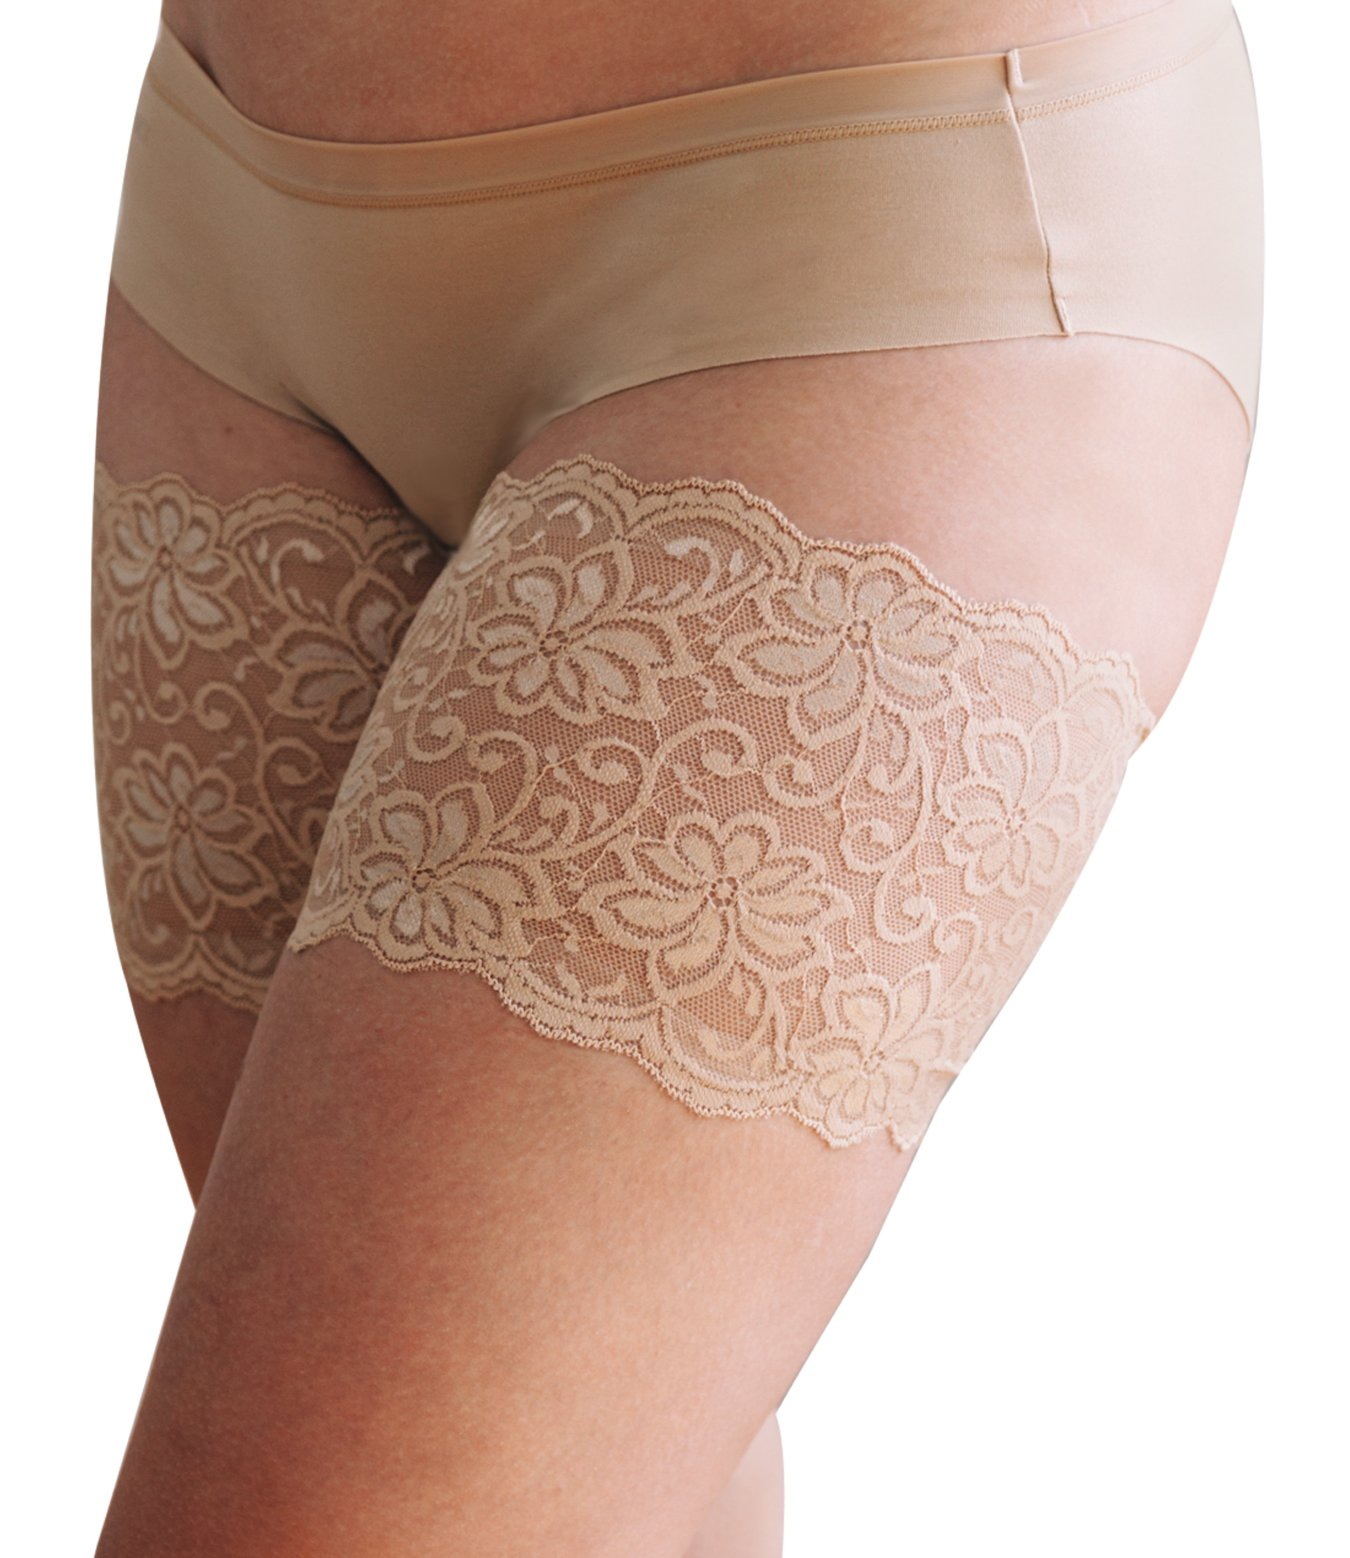 Bandelettes Elastic Anti-Chafing Thigh Bands - Prevent Thigh Chafing - Dolce Beige, Size C